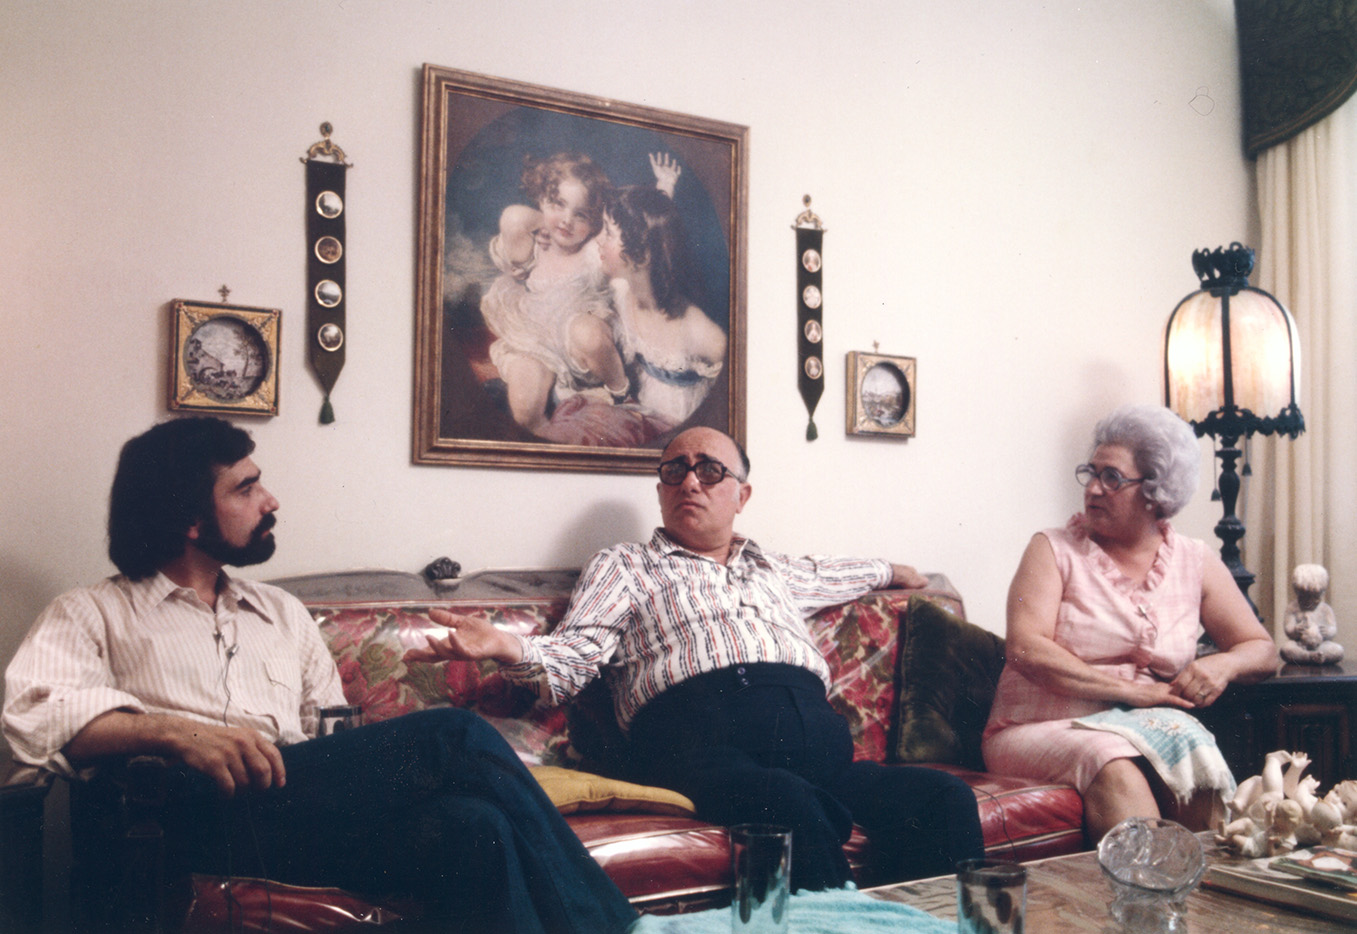 Martin Scorsese, Charles e/and Catherine Scorsese, Italianamerican, 1974. Martin Scorsese Collection, New York.